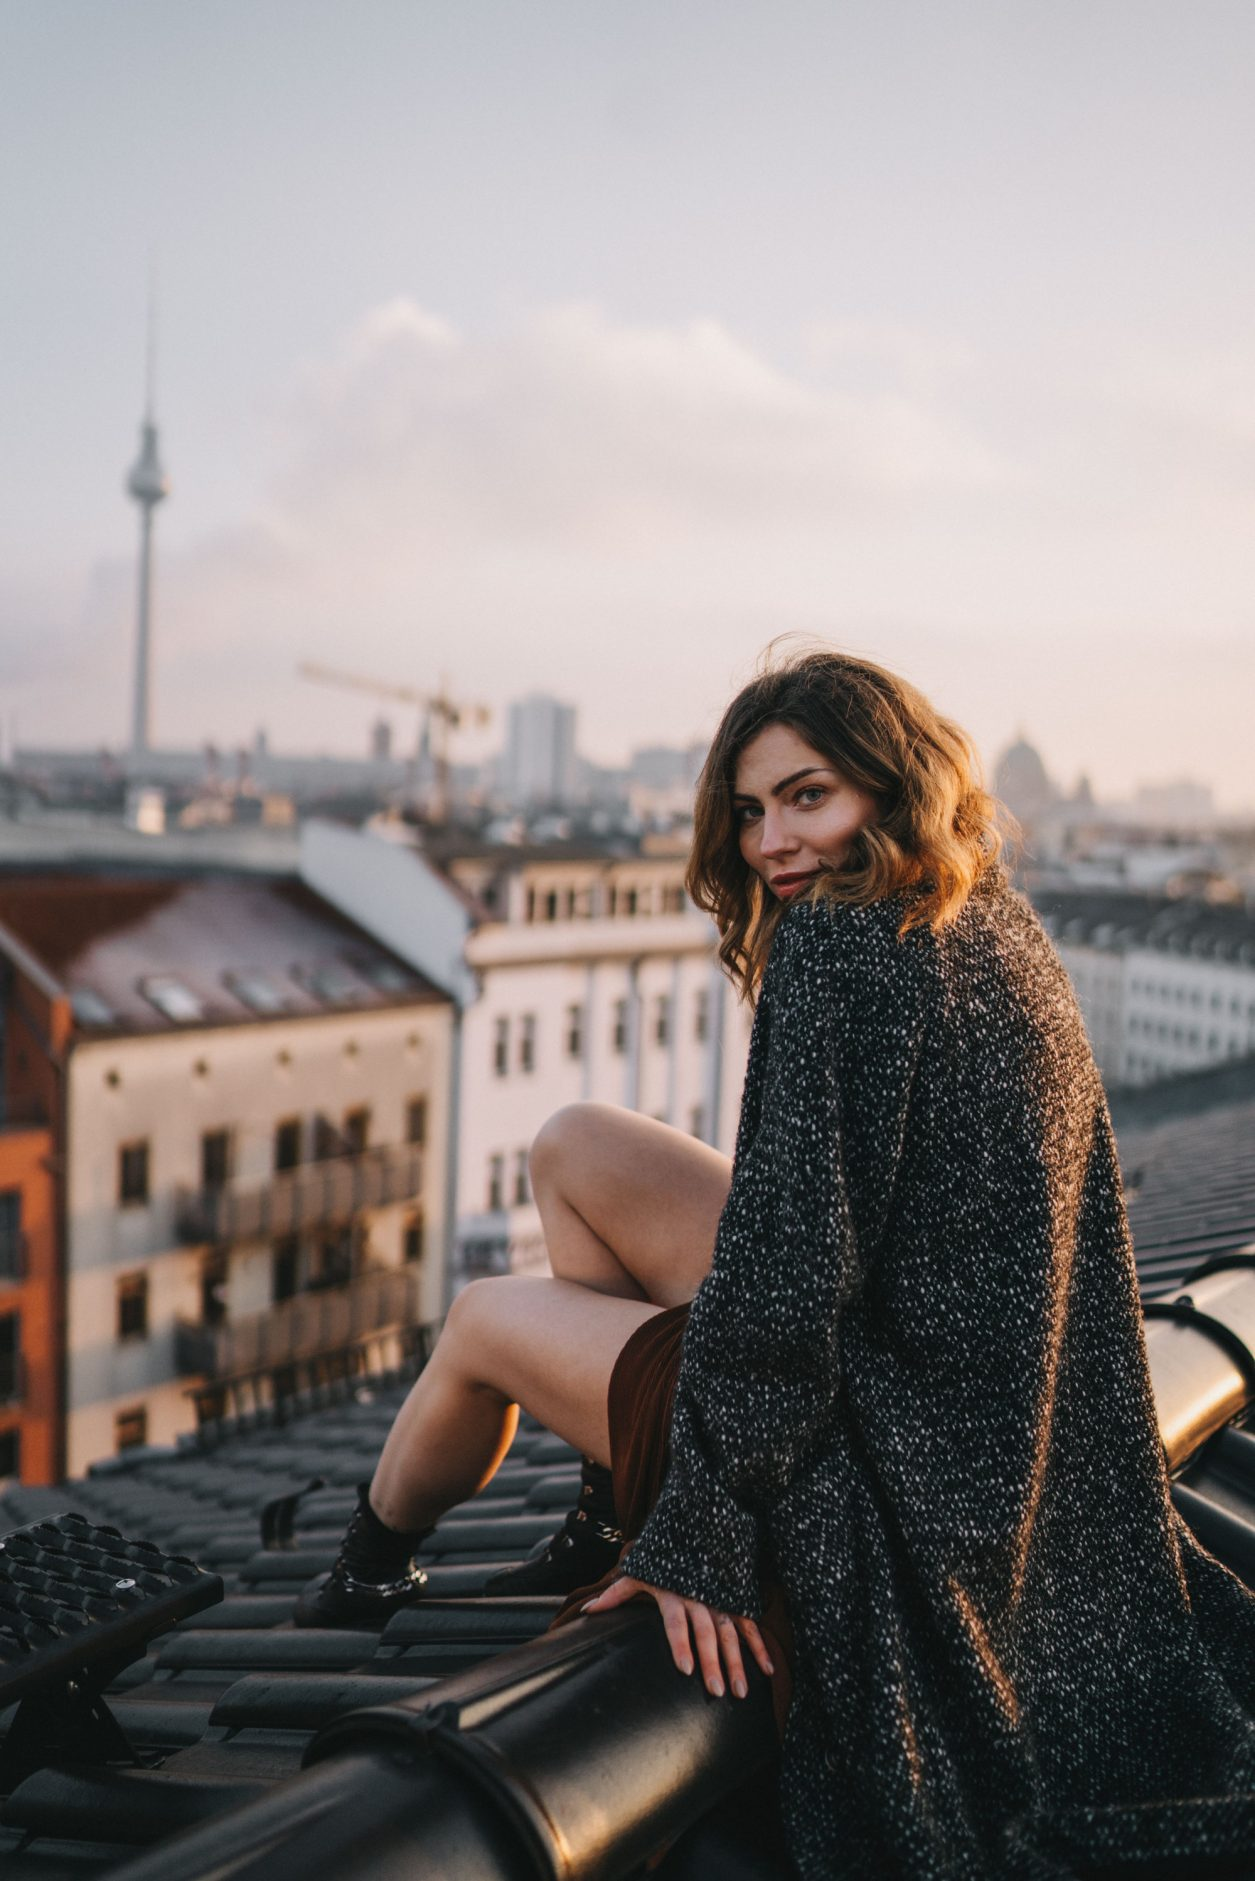 Moody Editorial on a  Rooftop in Berlin Mitte by Masha Sedgwick (Maria Astor) | column | being proud | self love